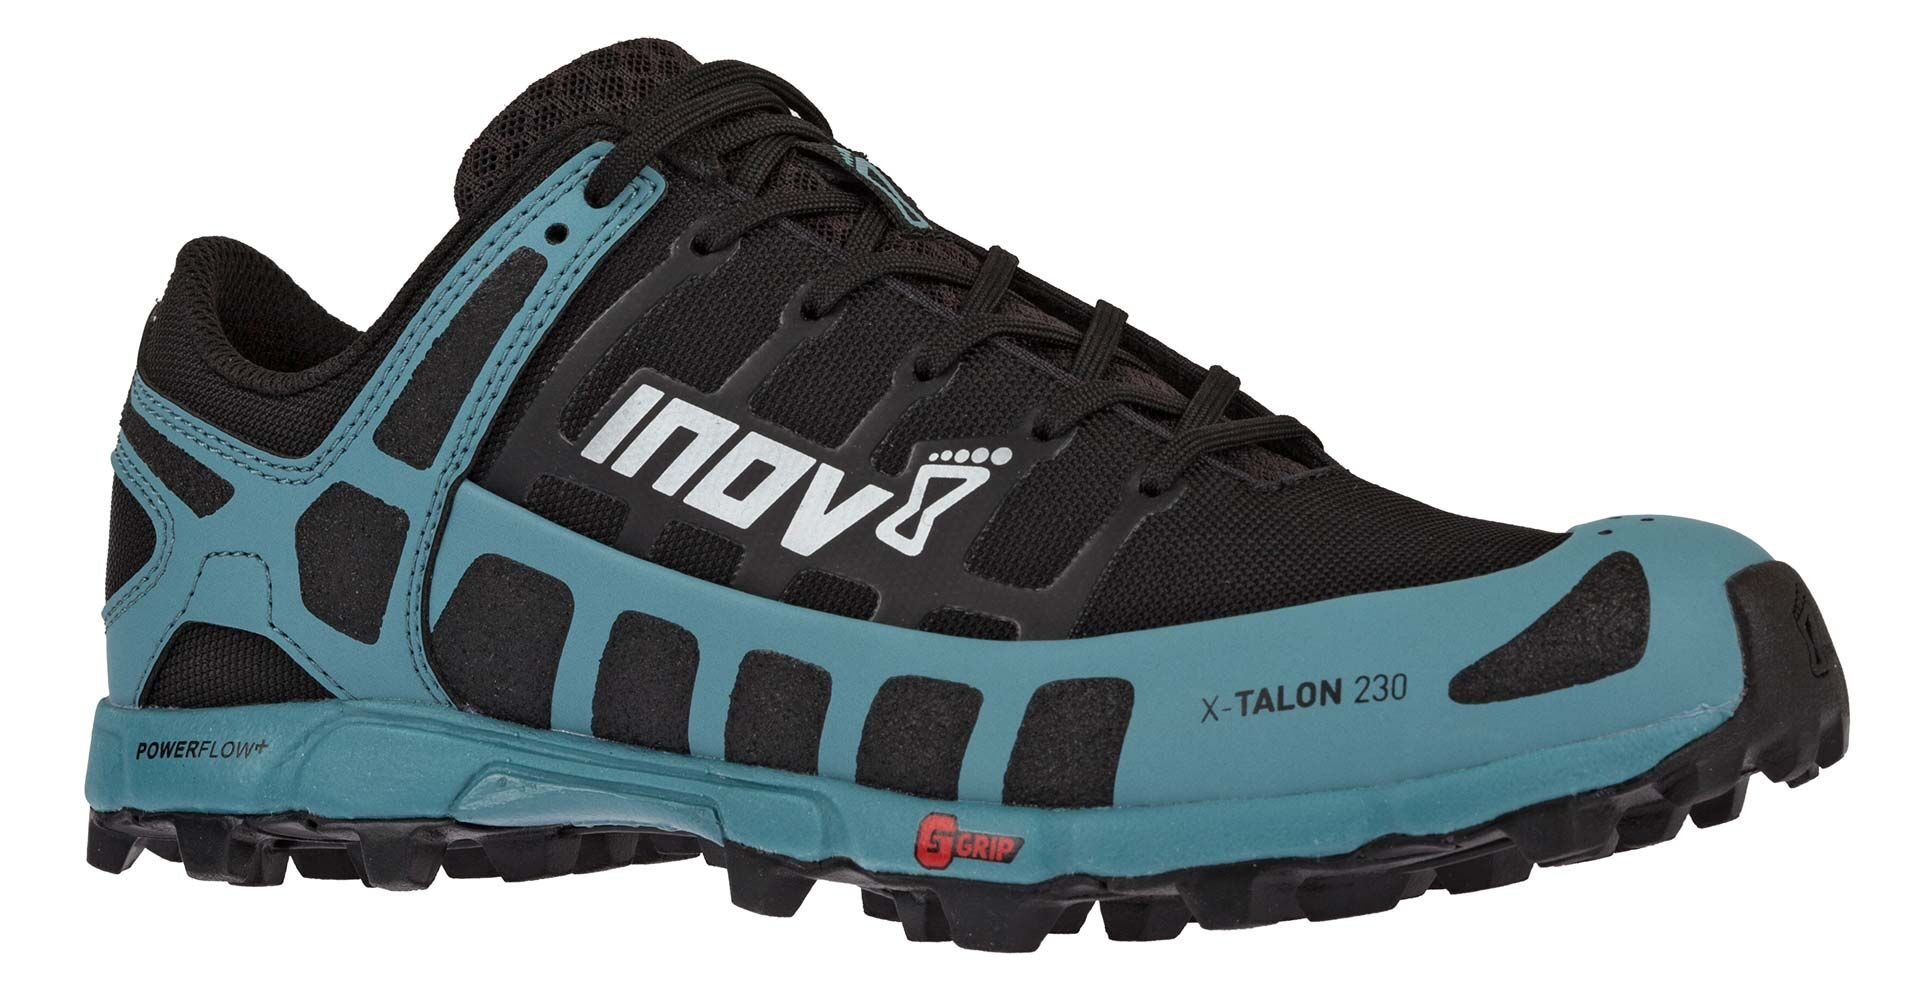 xtalon230-w-black-bluegrey-front